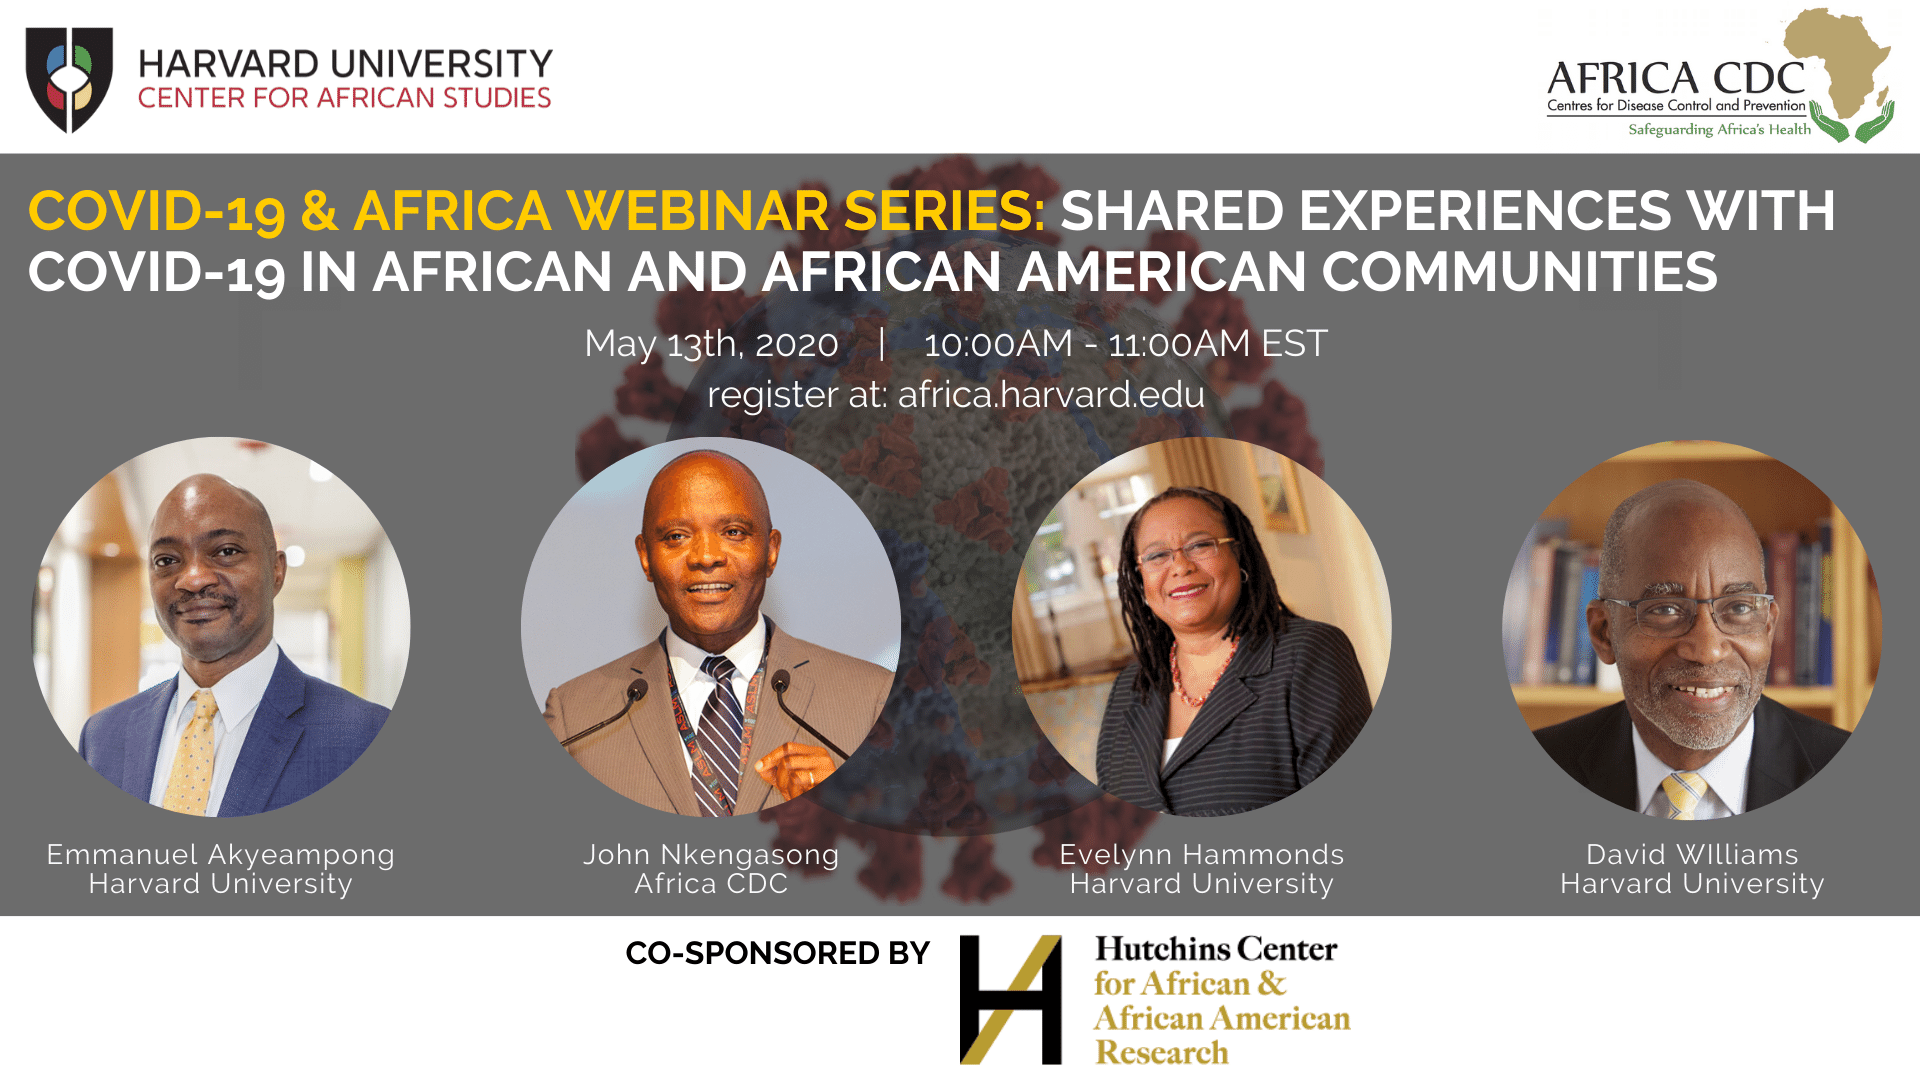 AFRICA & COVID-19 WEBINAR SERIES: SHARED EXPERIENCES WITH COVID-19 IN AFRICAN AND AFRICAN AMERICAN COMMUNITIES